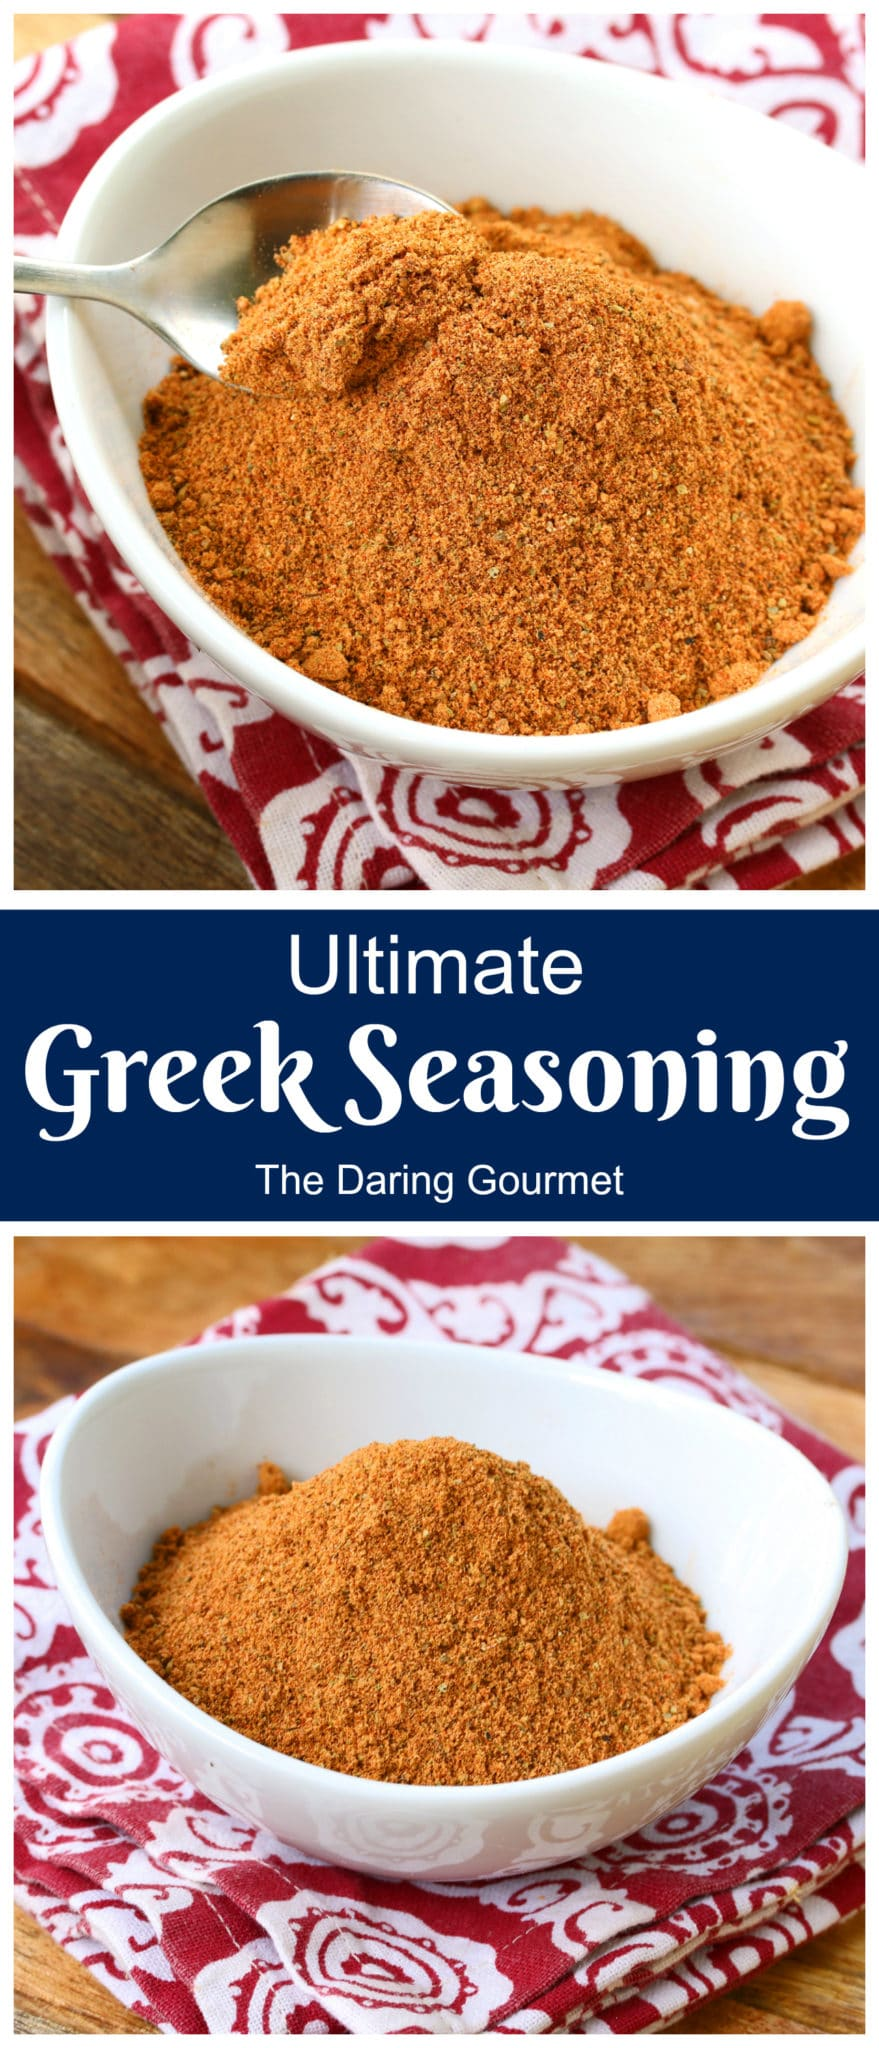 Greek seasoning recipe homemade best easy quick all purpose mix blend